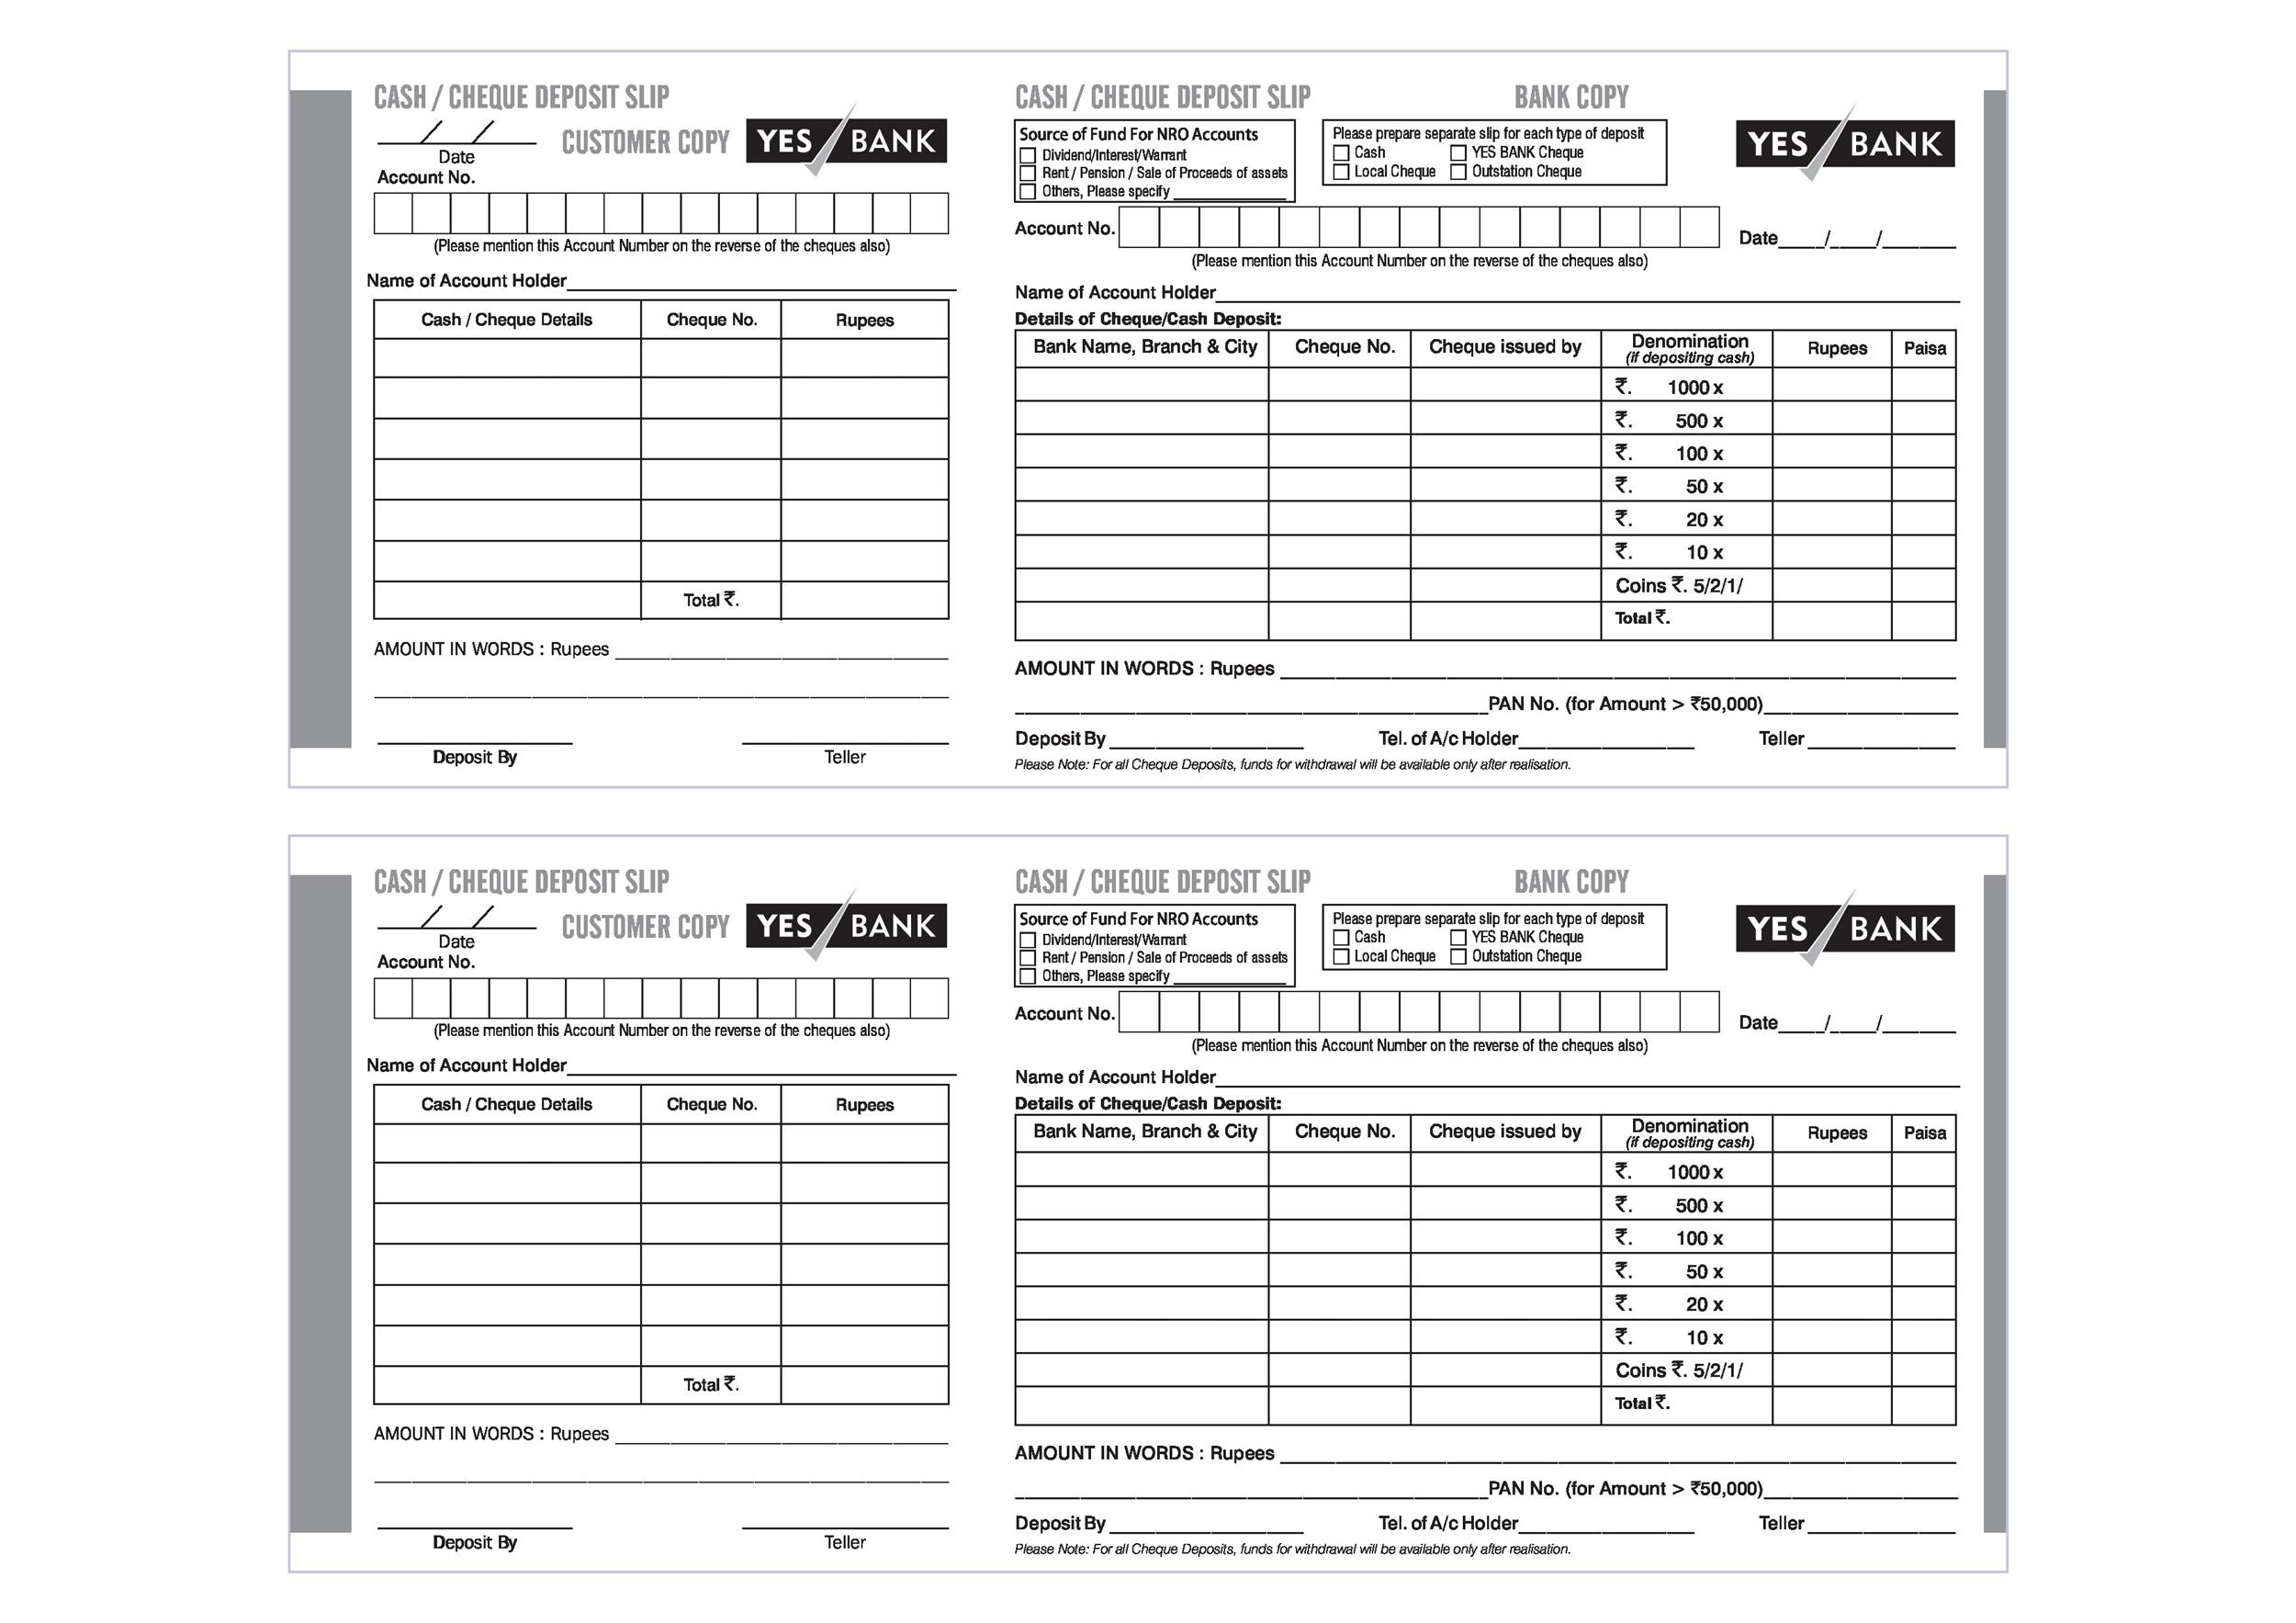 37 bank deposit slip templates  u0026 examples  u1405 template lab